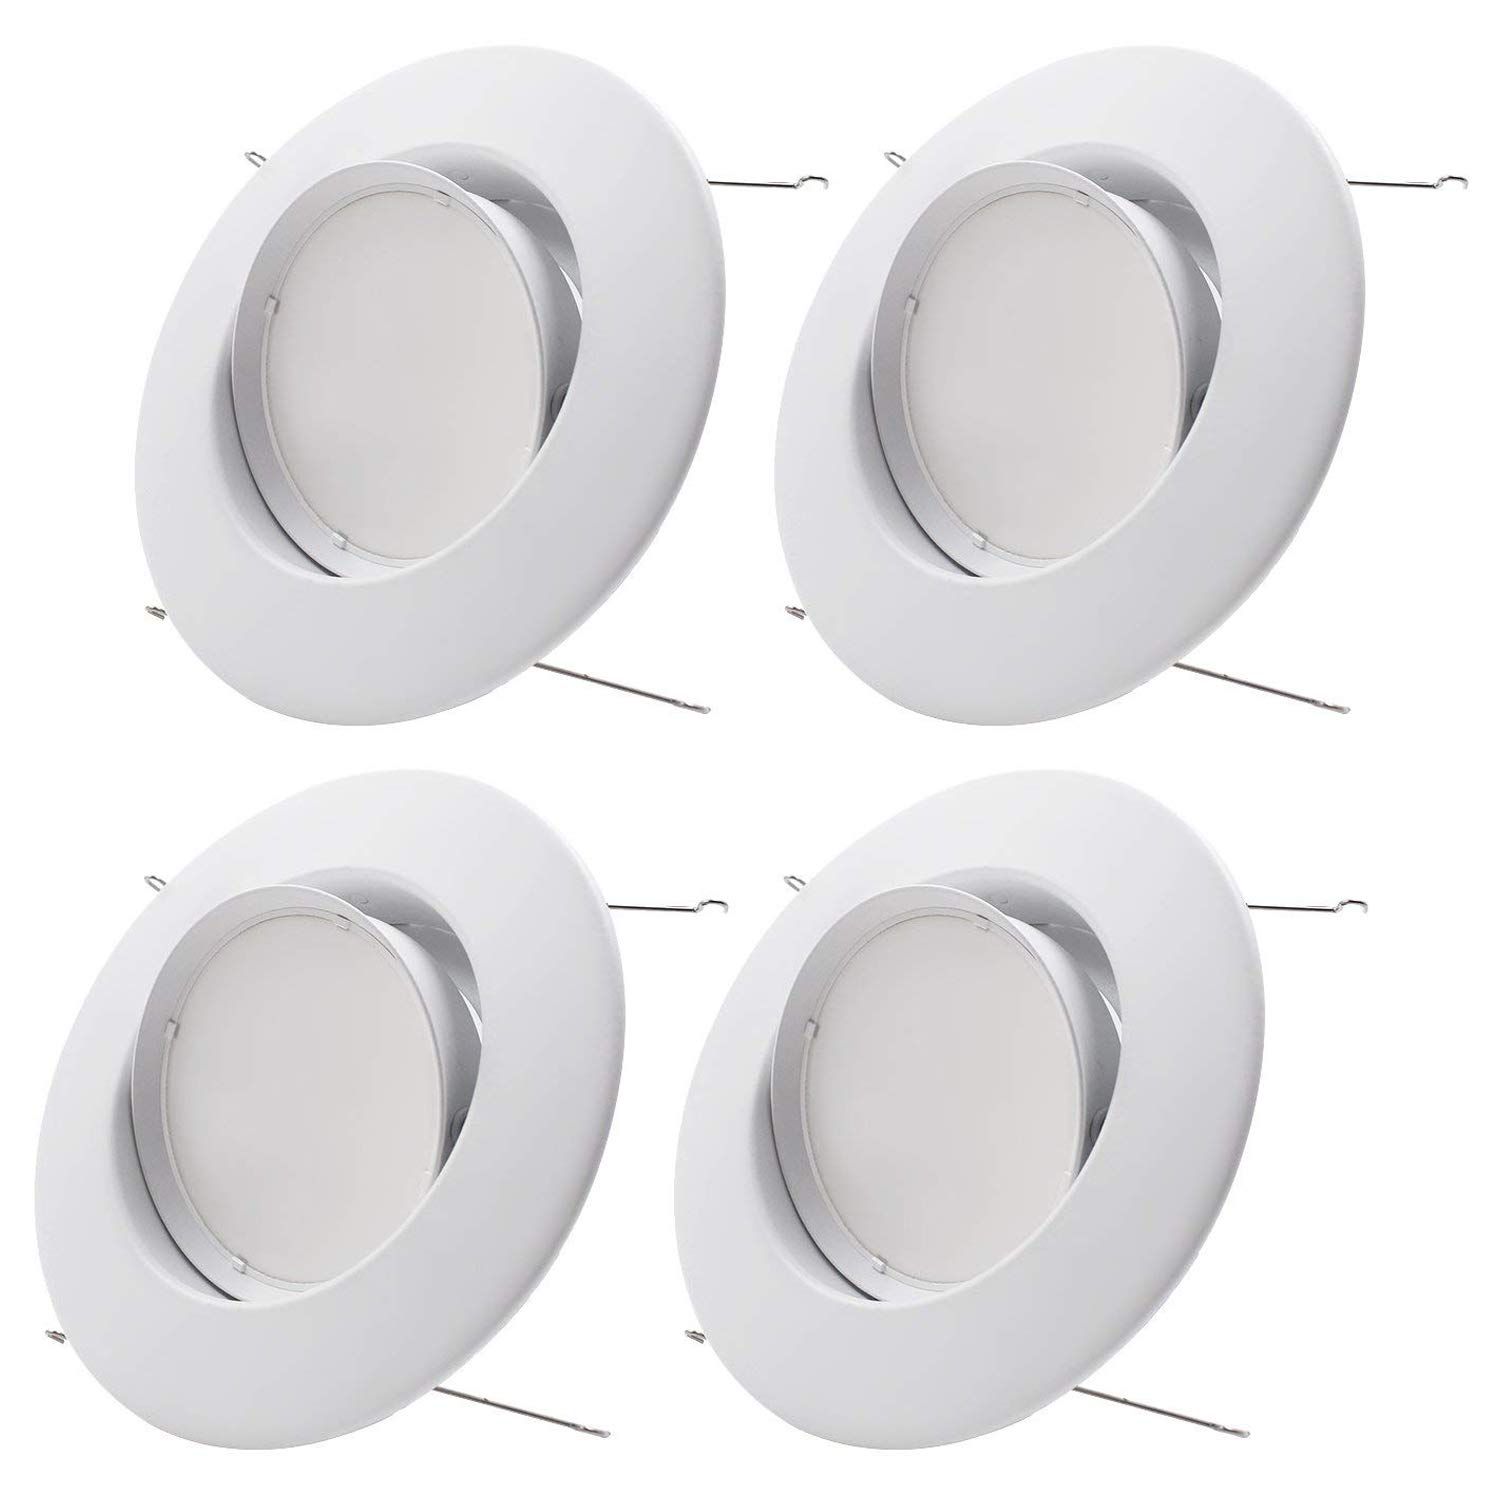 Sun & Star 10W 5/6inch Gimbal LED Recessed Light Retrofit Kit, 75W Equiv. Energy Star & UL Classified Light Fixture, Adjustable LED Directional Ceiling Down Light - 4000K Cool White, Pack of 4